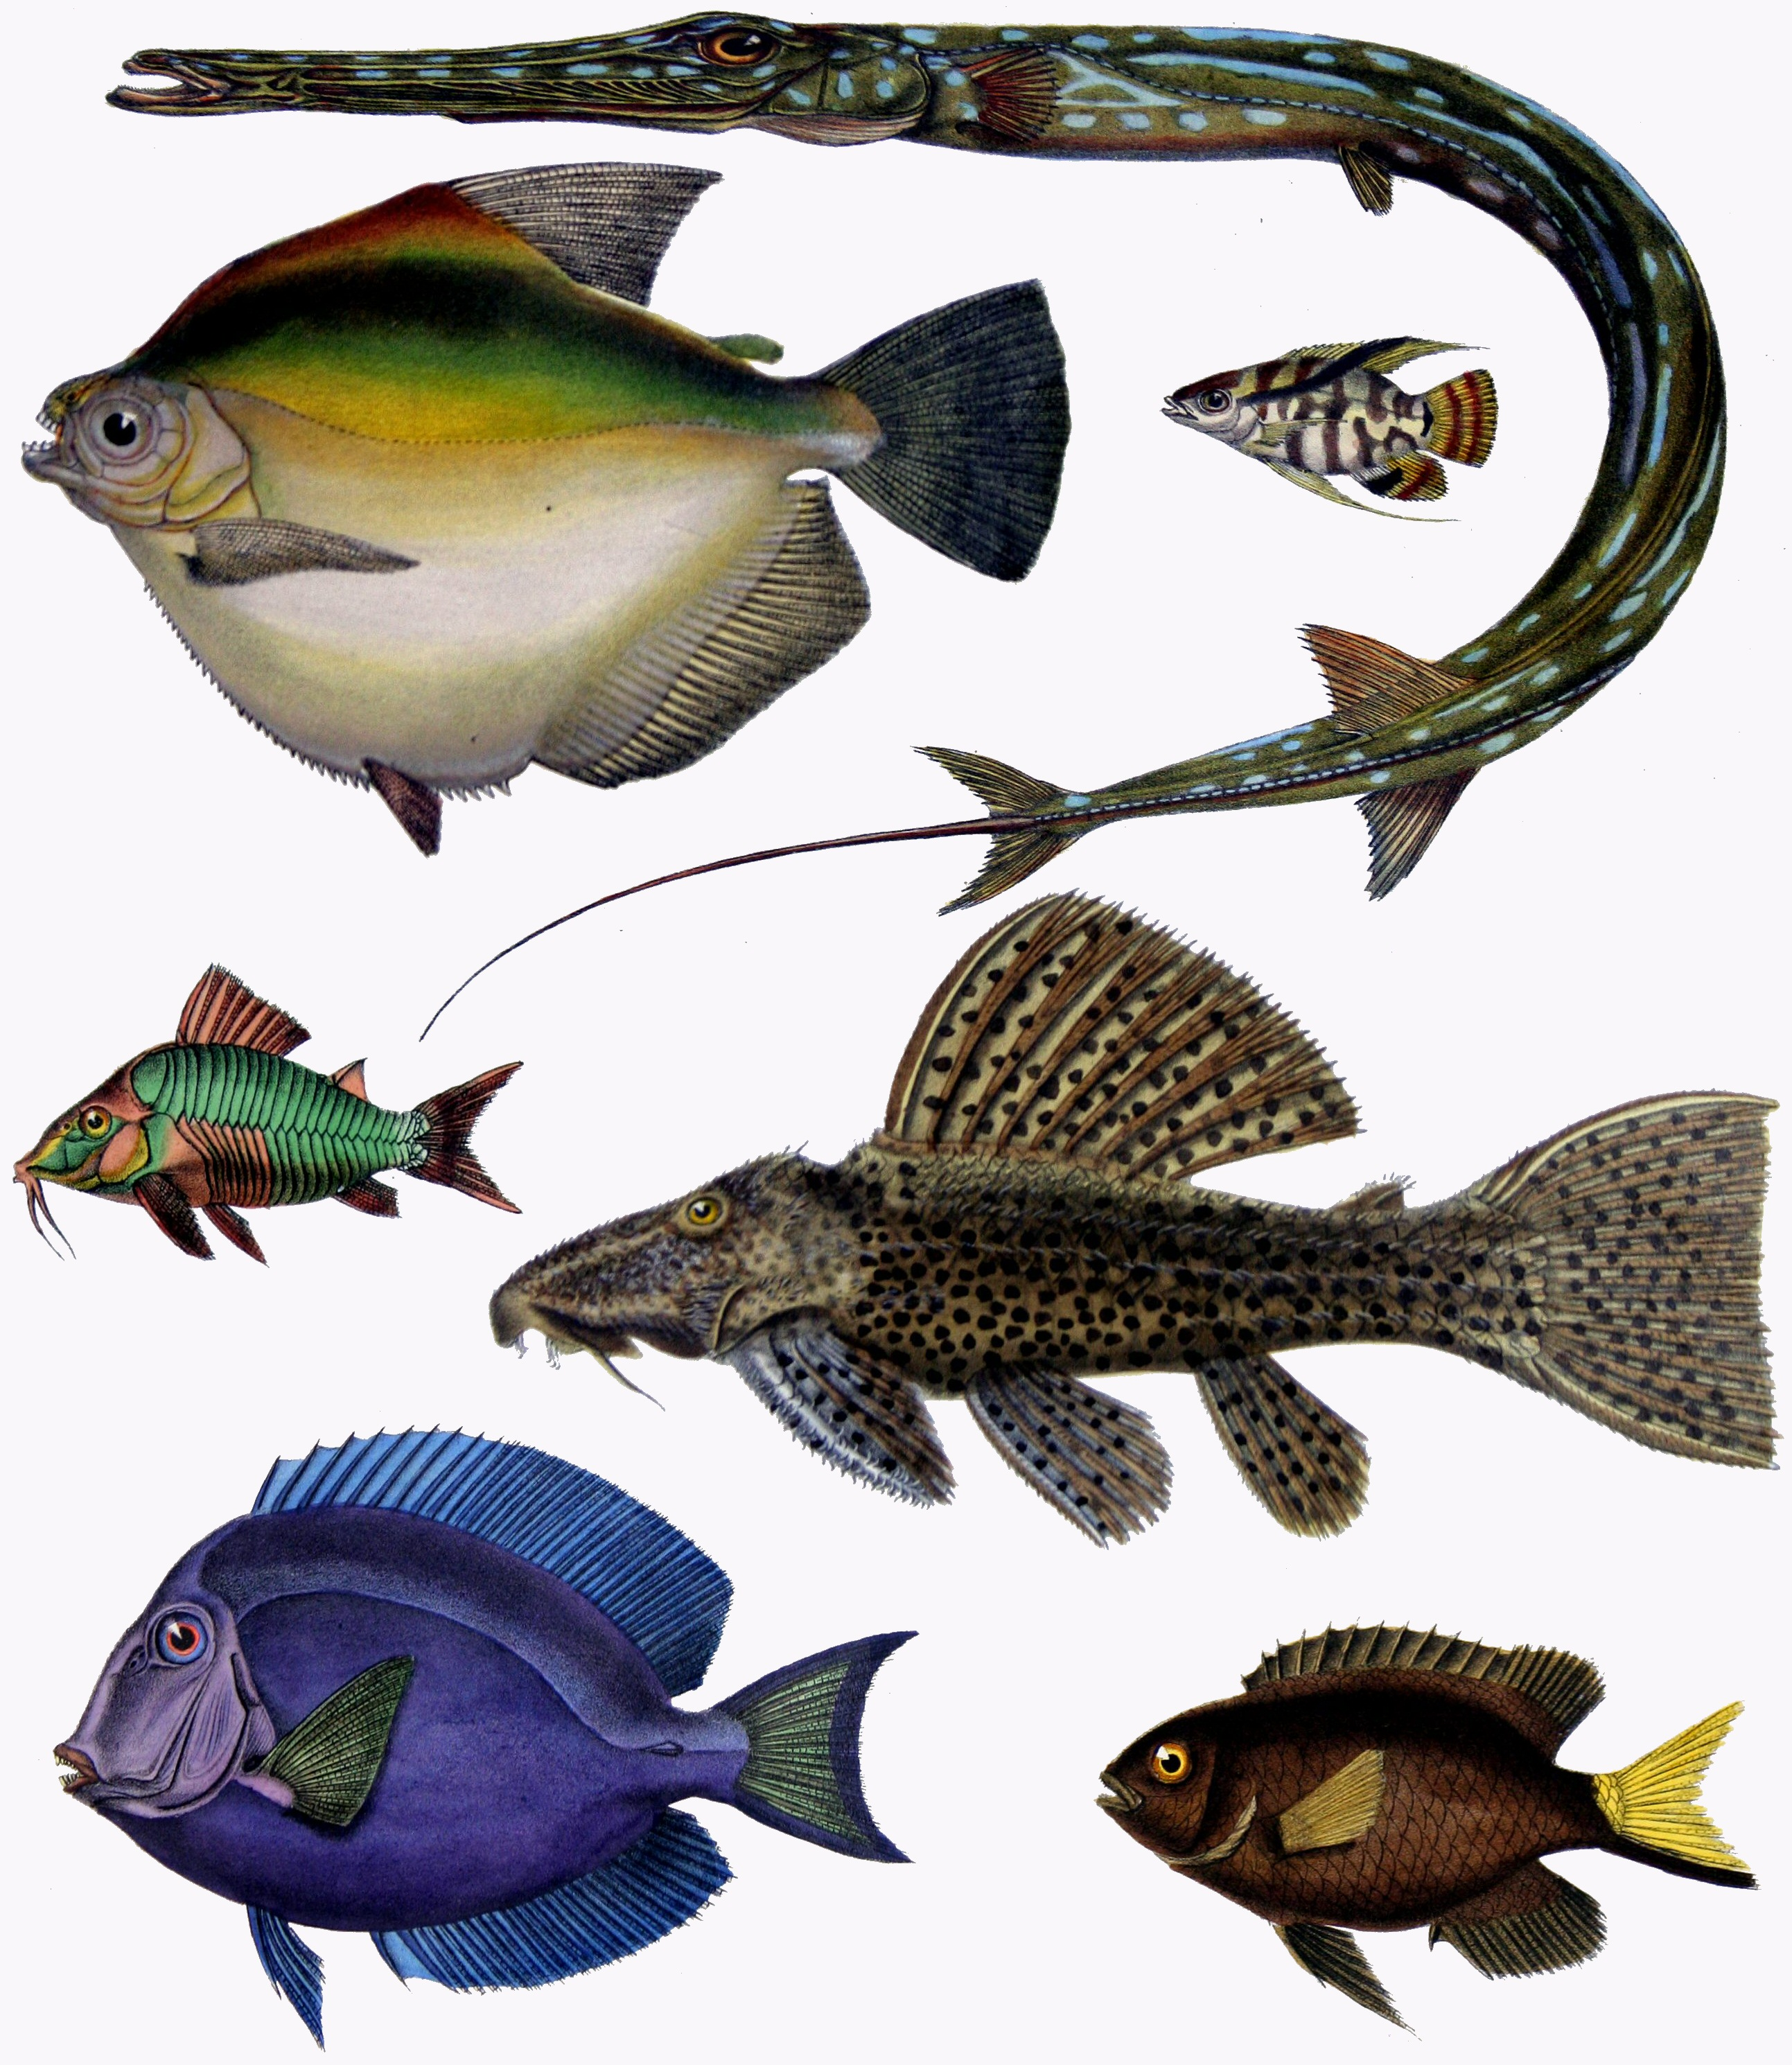 f_de_castelnau-poissons_-_diversity_of_fishes_composite_image